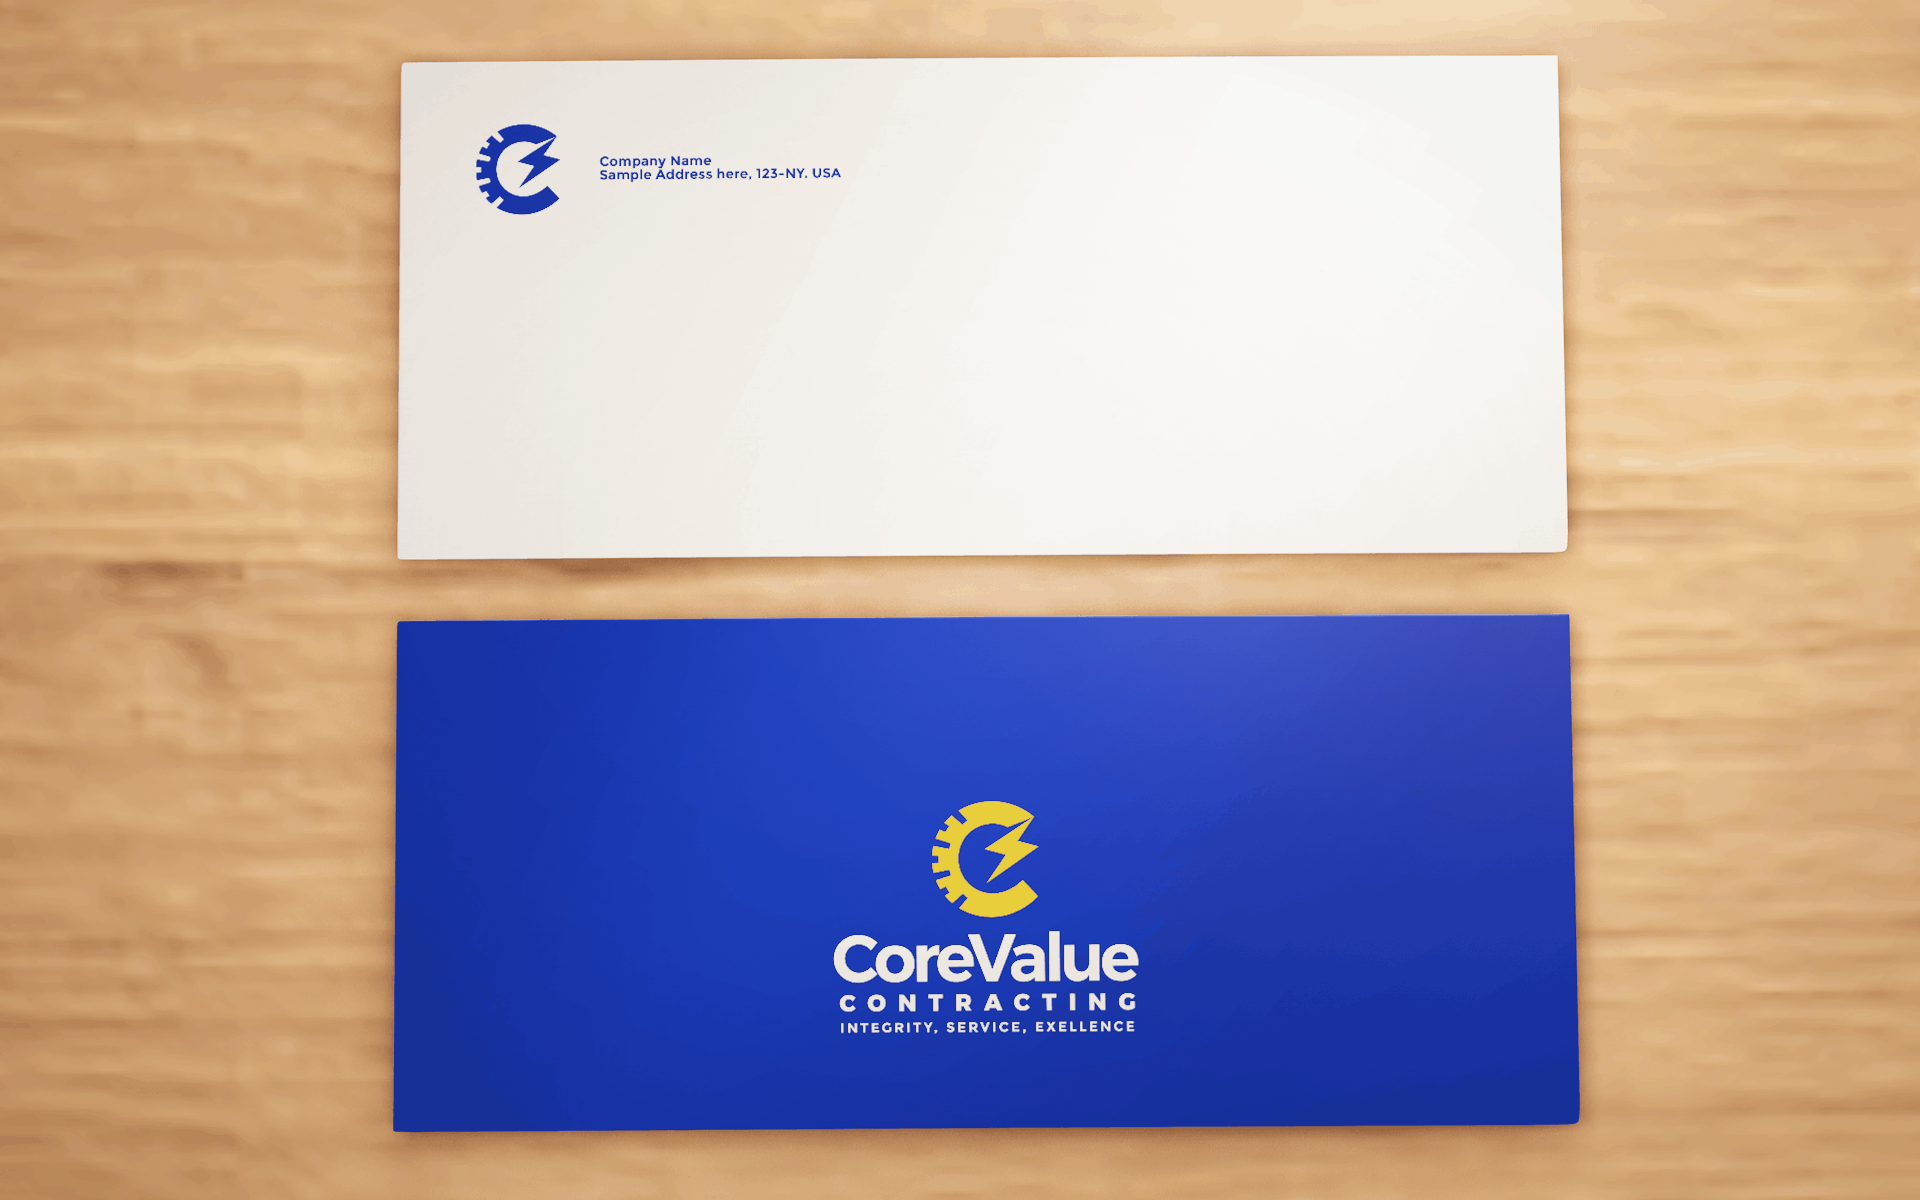 CORE VALUE CONTRACTING ENVELOPE